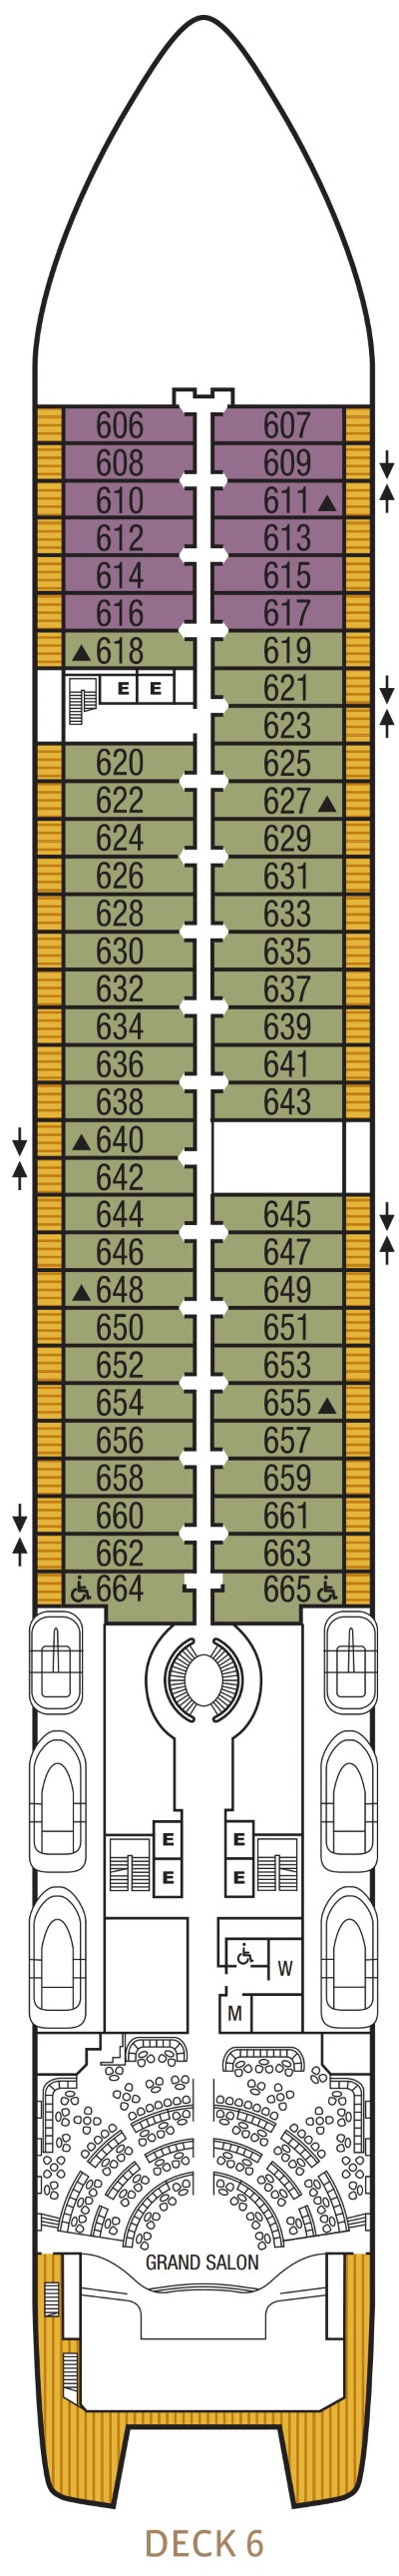 Seabourn Encore Deck 6 layout